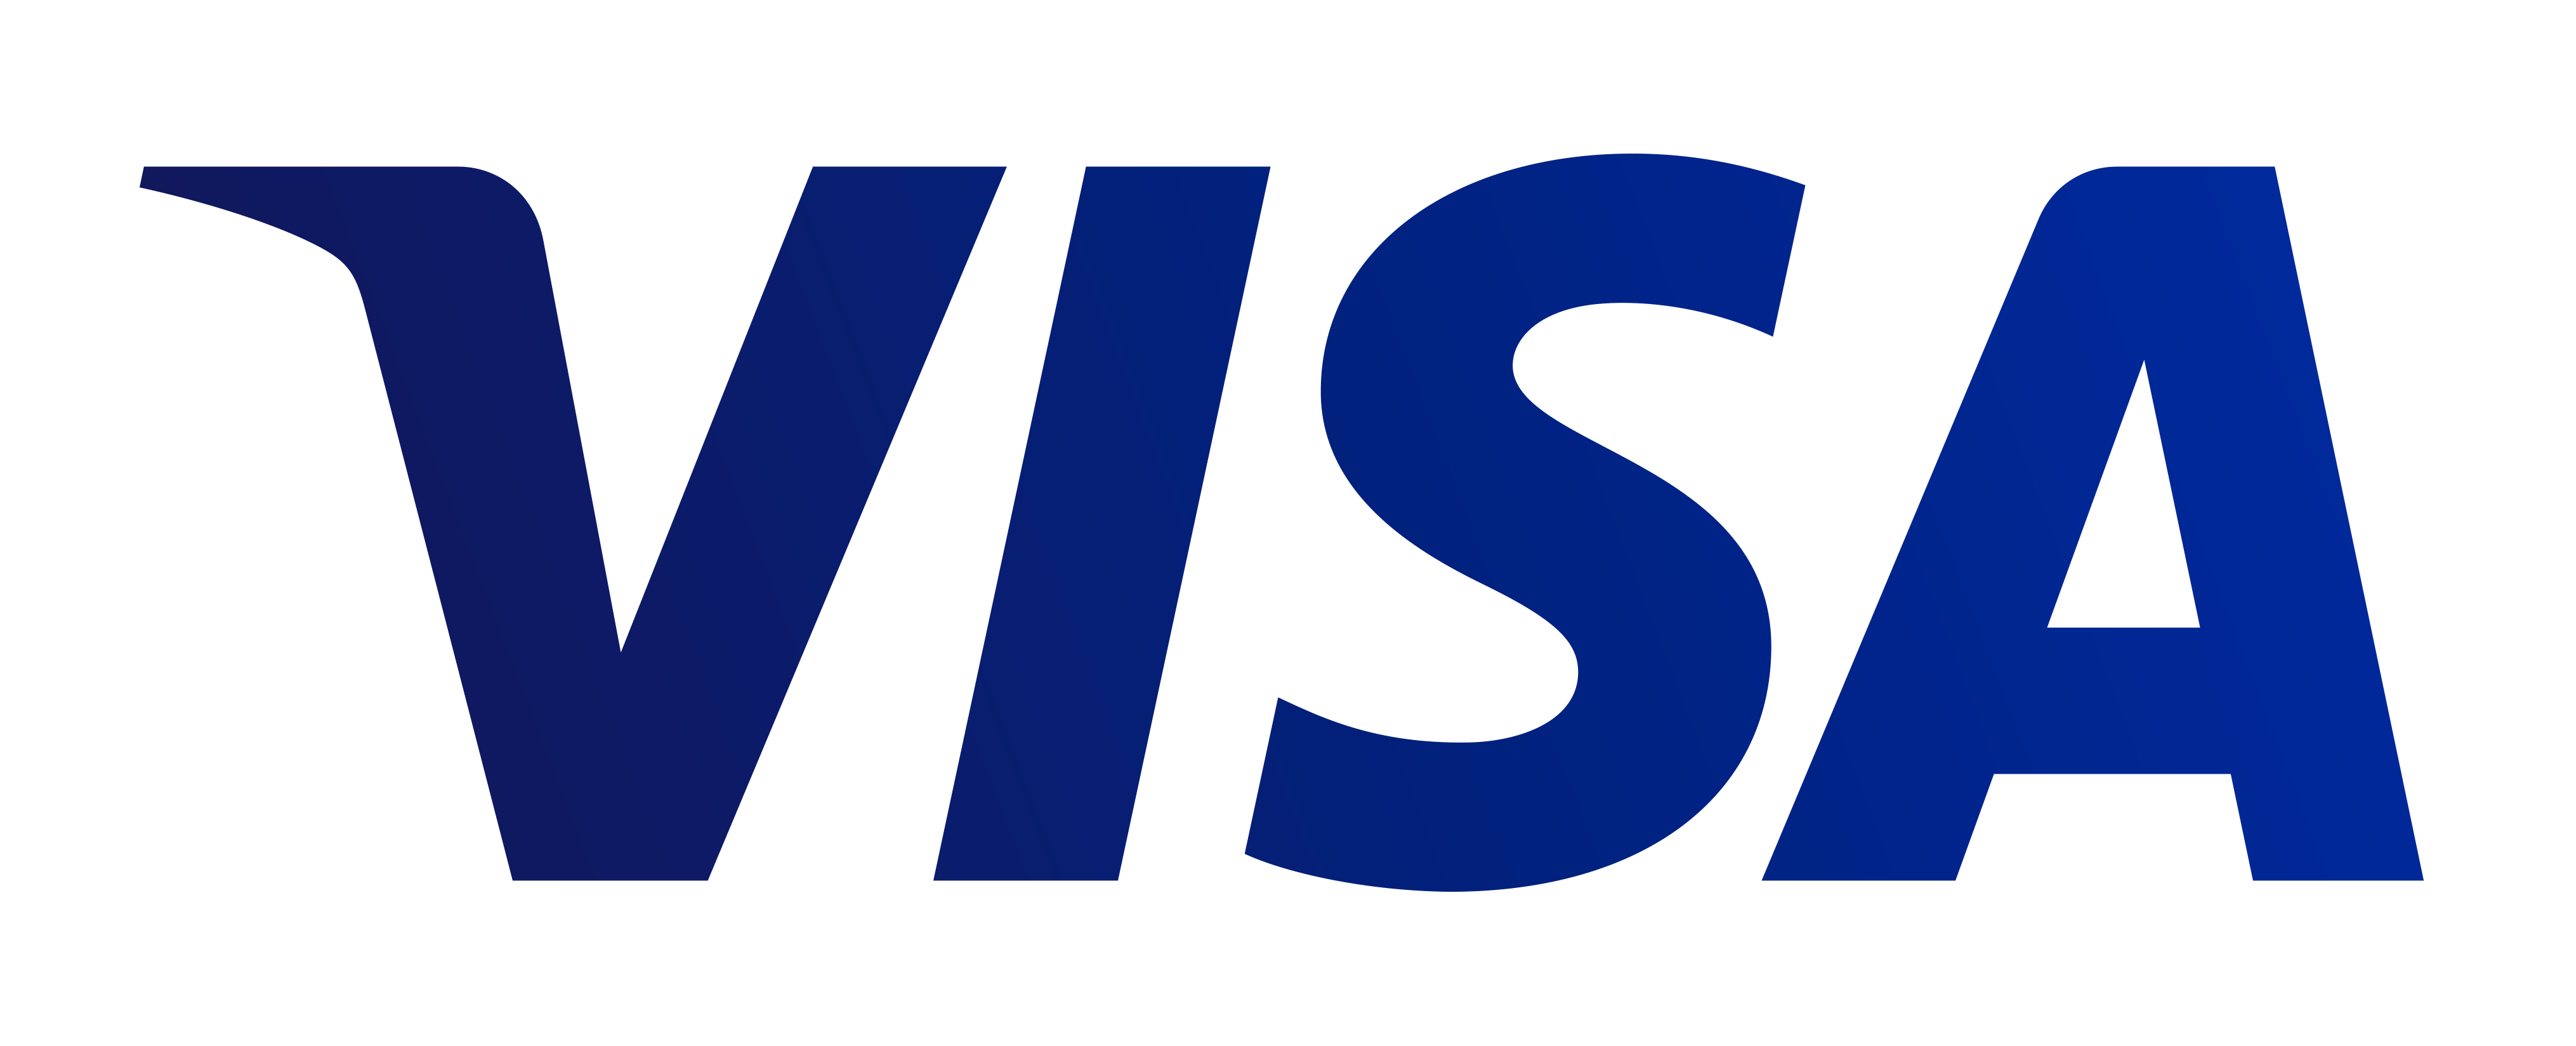 visa logo transparent png stickpng